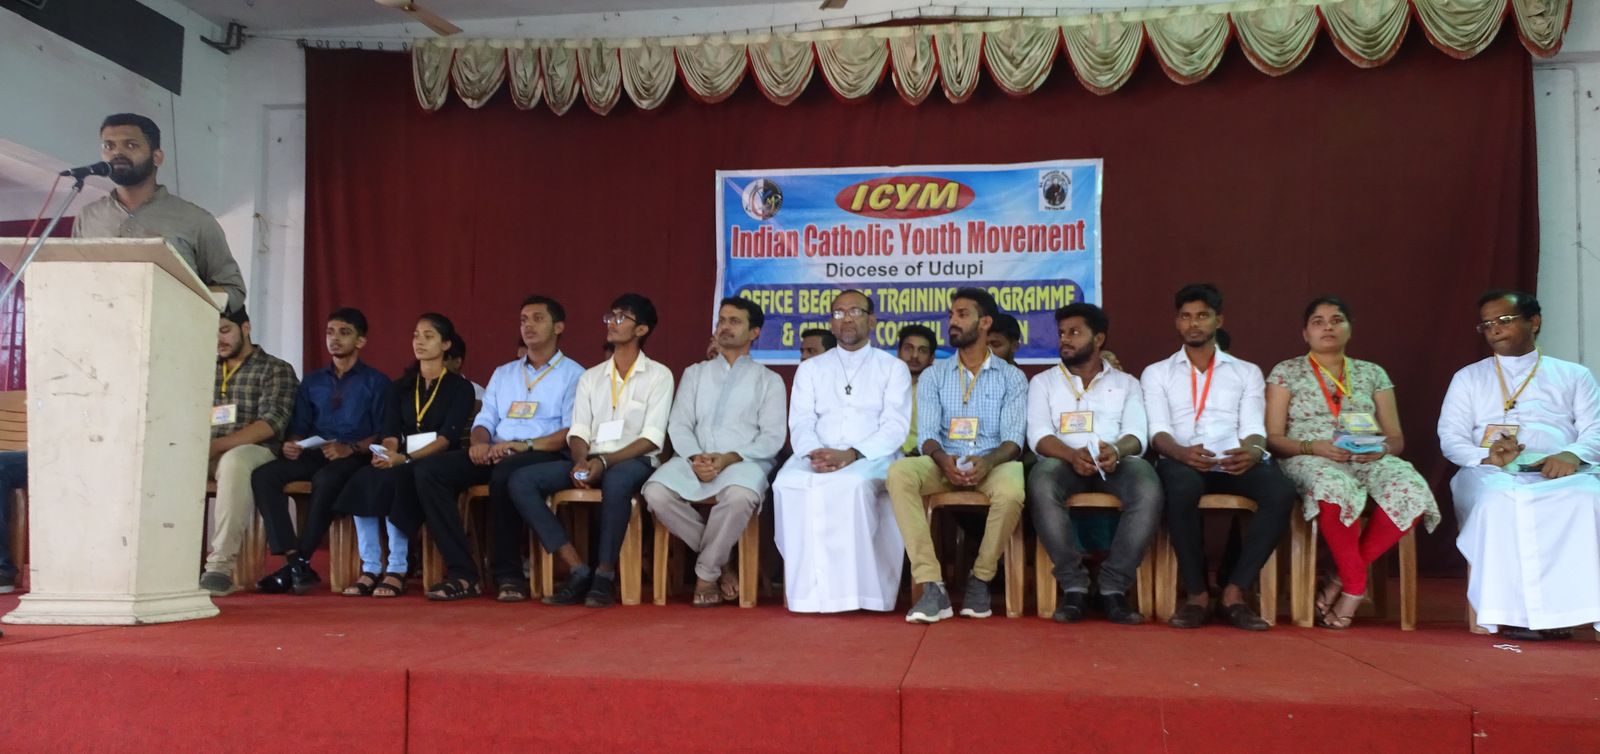 Vilton D'Souza Moodubelle unanimously elected President of ICYM, Udupi Diocese for the year 2020